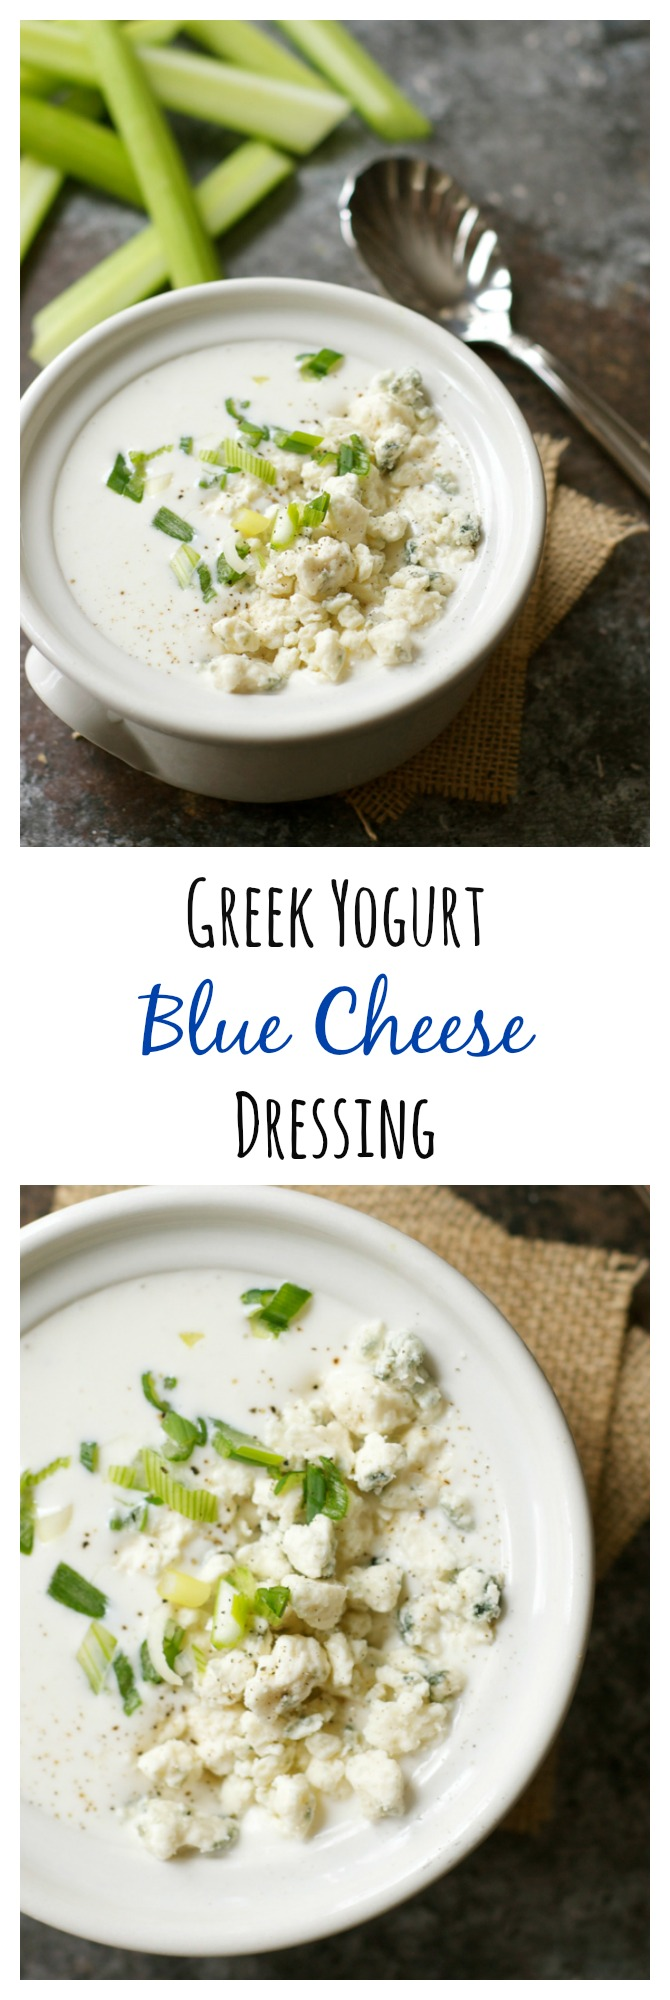 Rich, creamy blue cheese dressing for a fraction of the calories? Yes please! This light and healthy version is made with Greek yogurt.